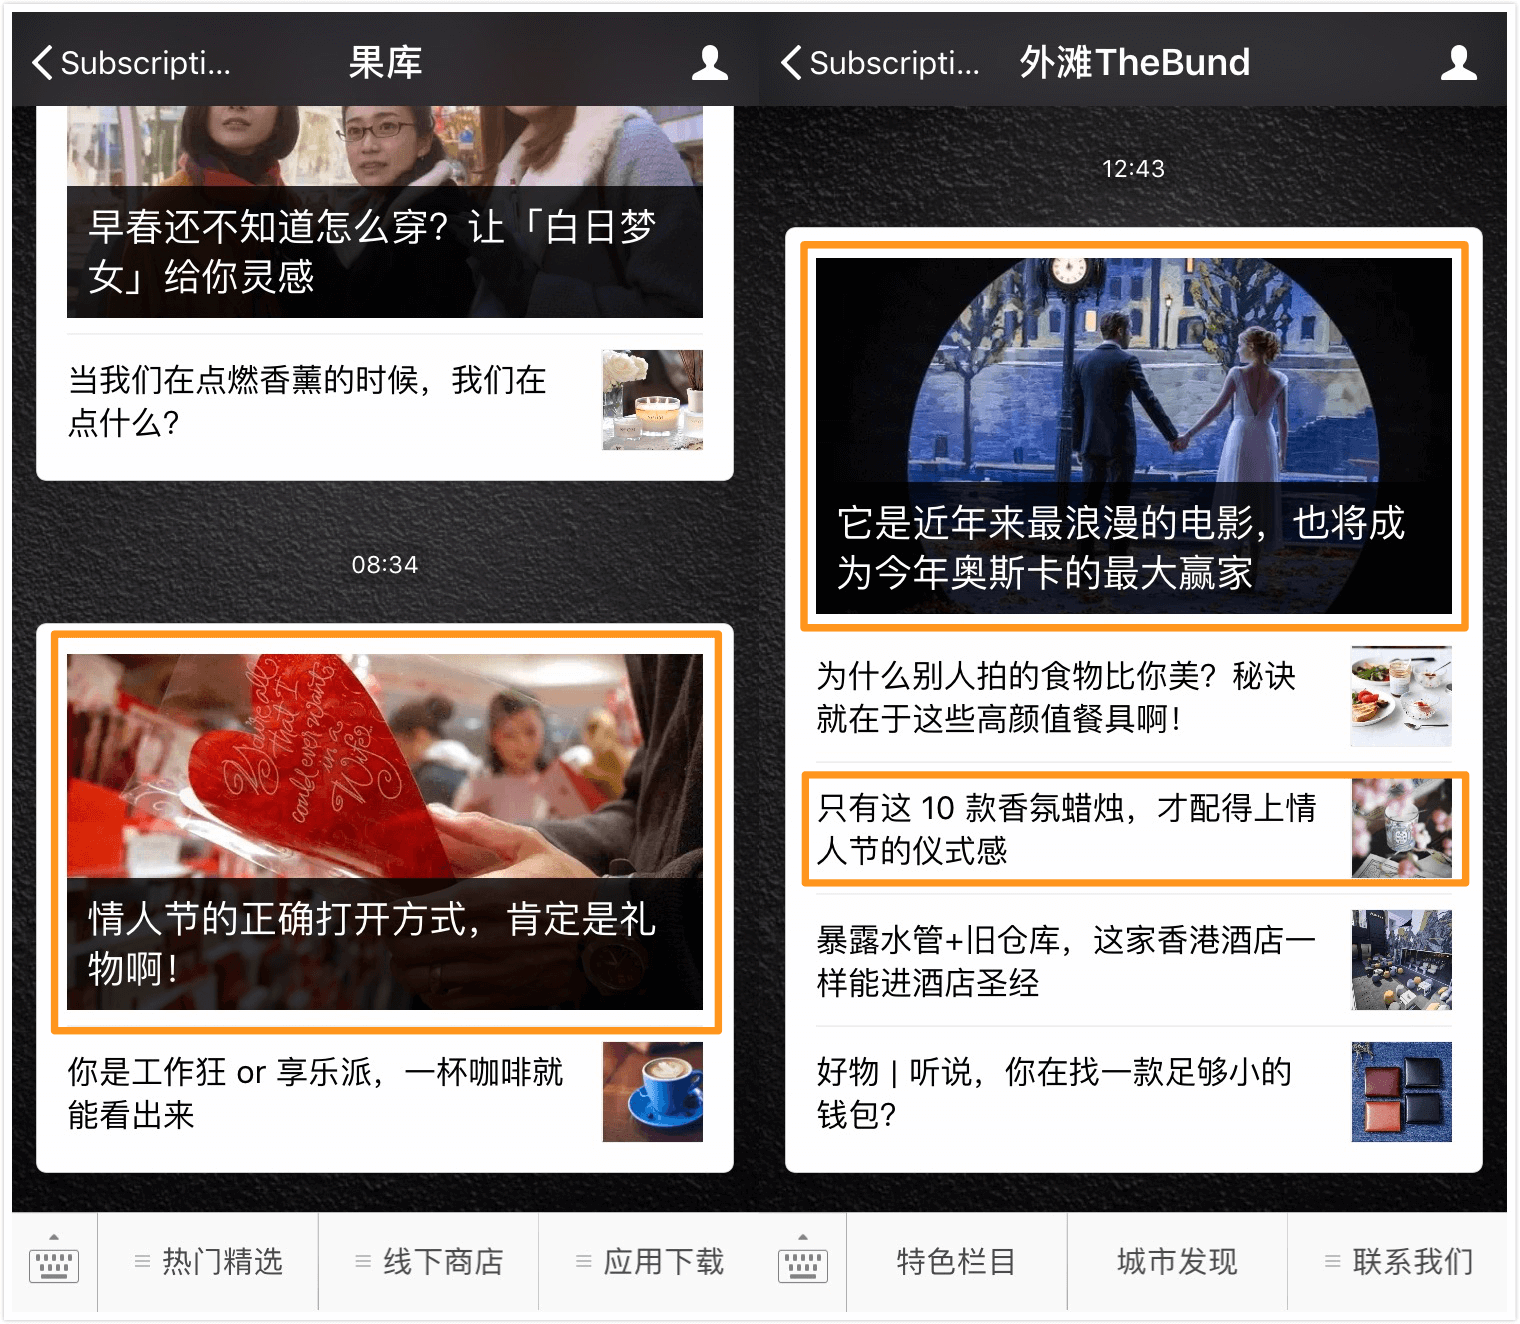 WeChat official accounts push Valentine's Day-related content